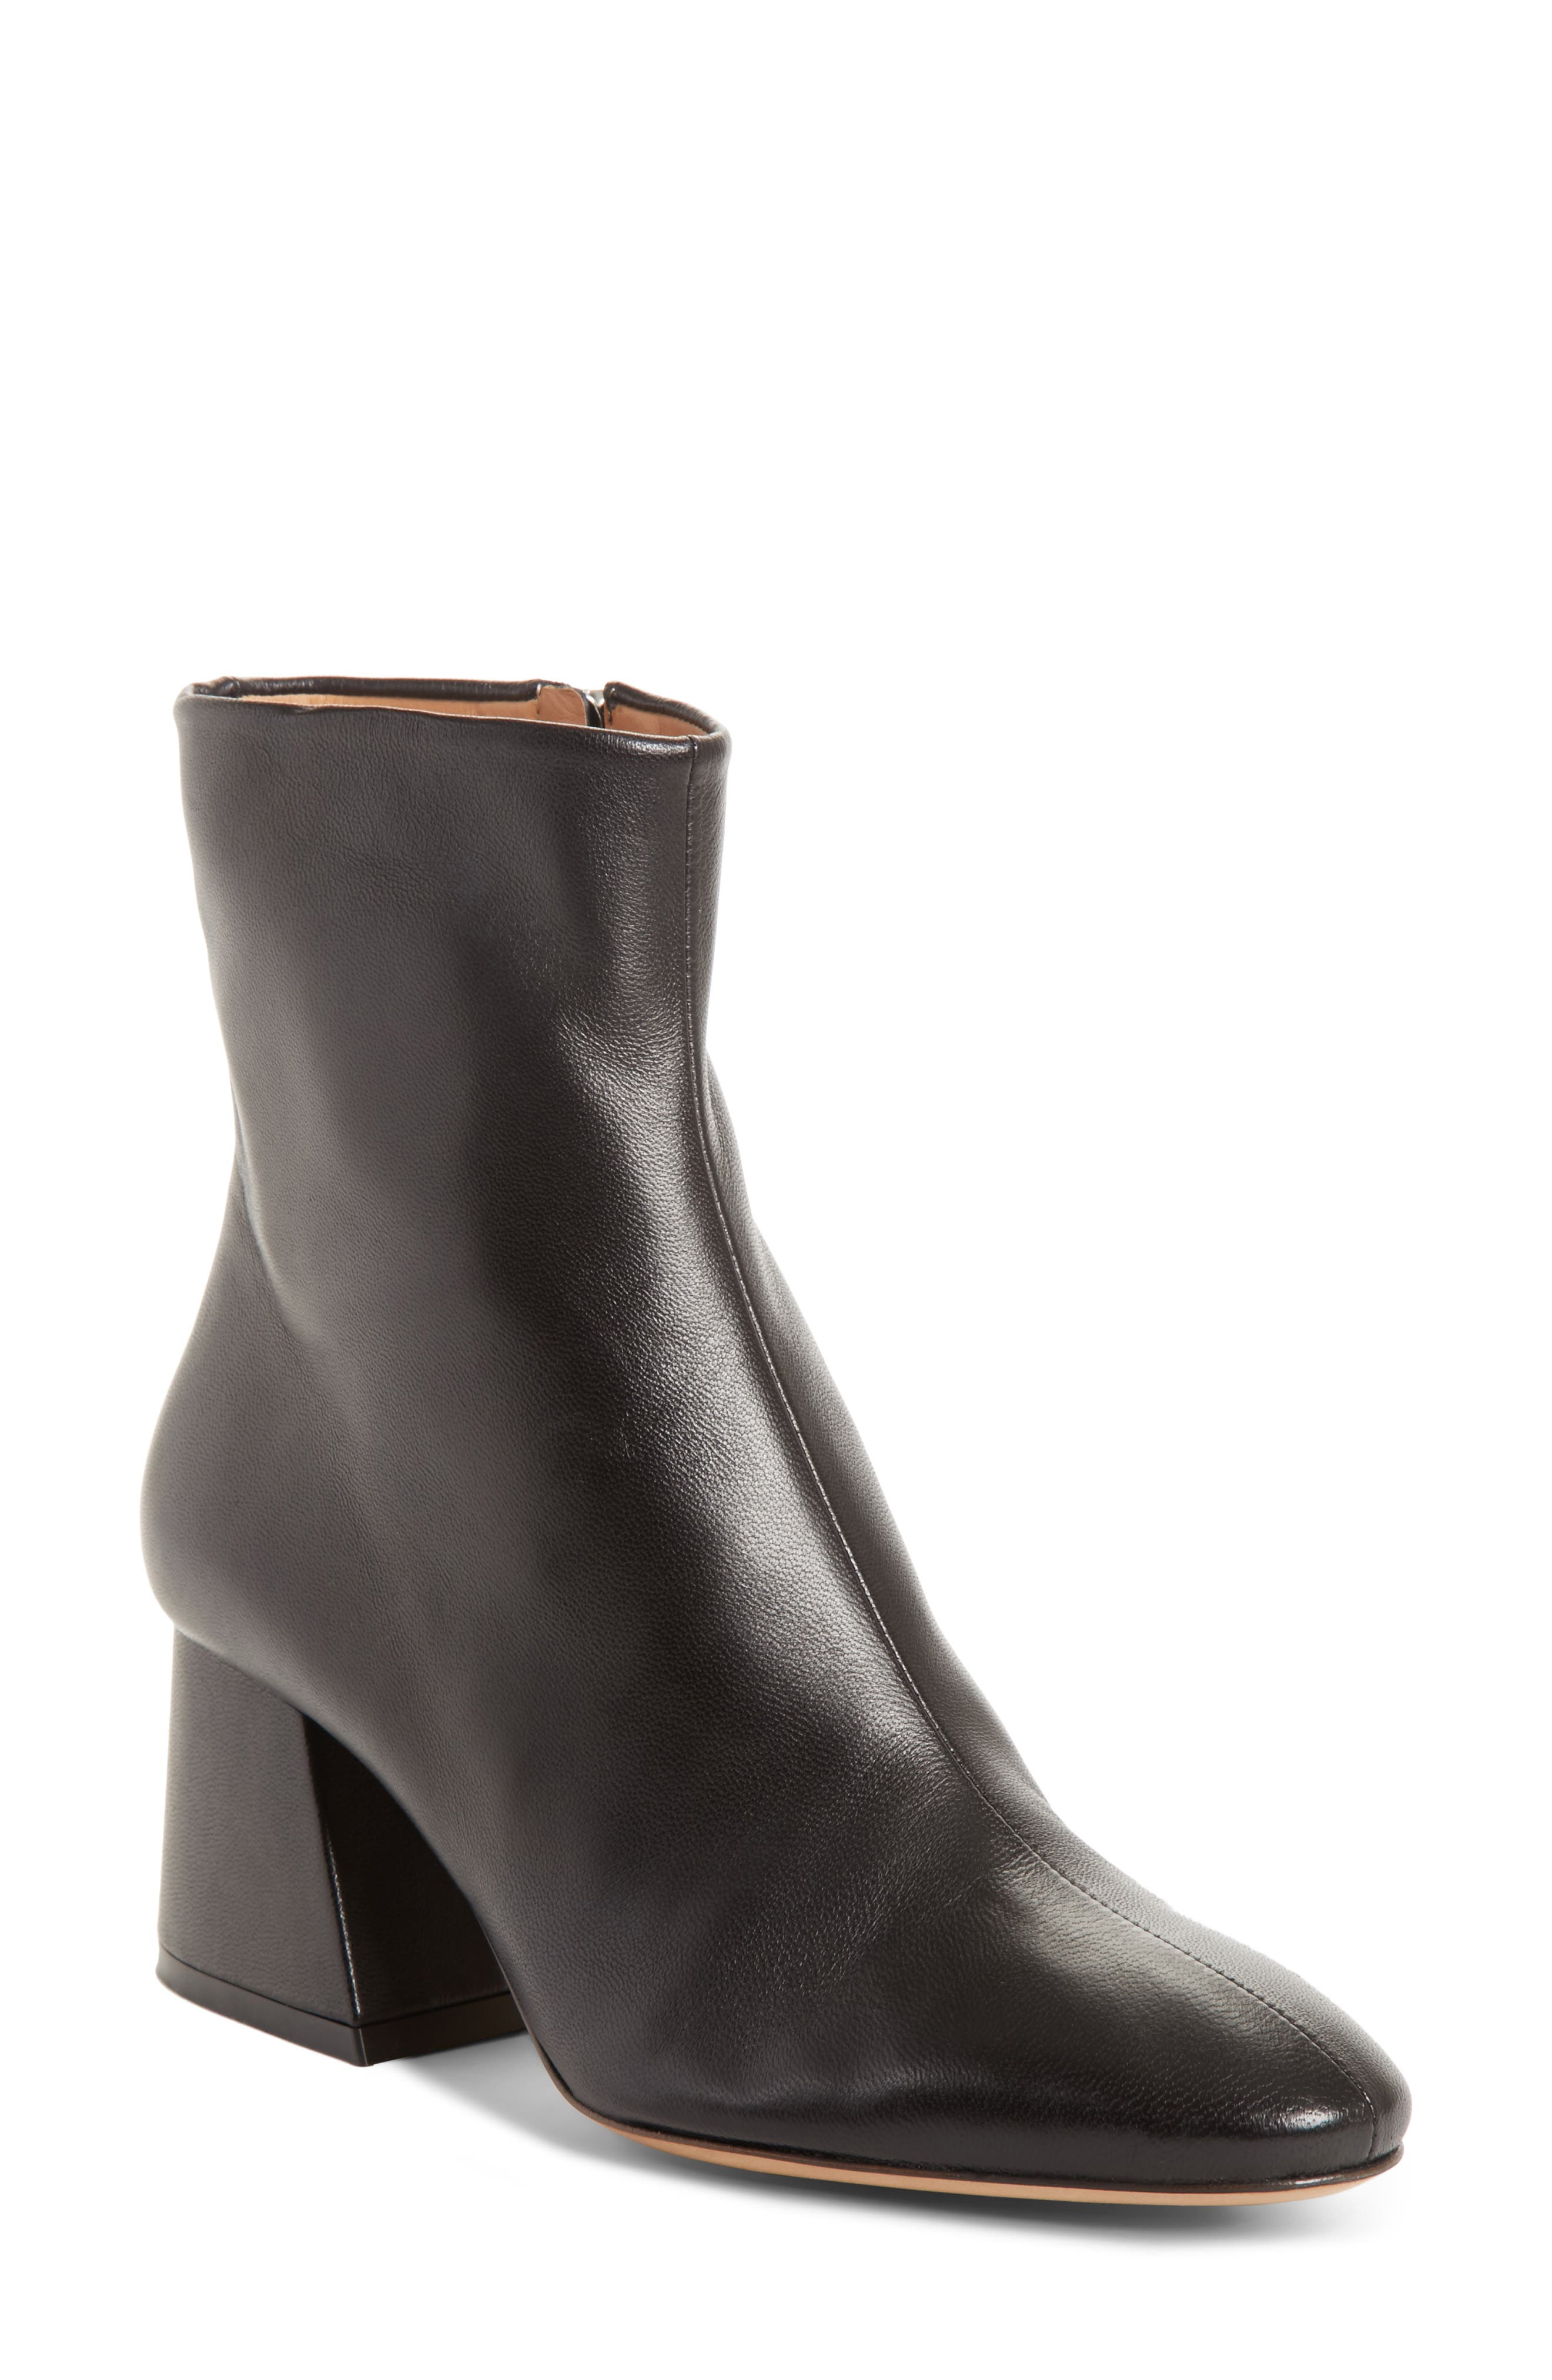 Flare Heel Ankle Boot,                         Main,                         color, Black